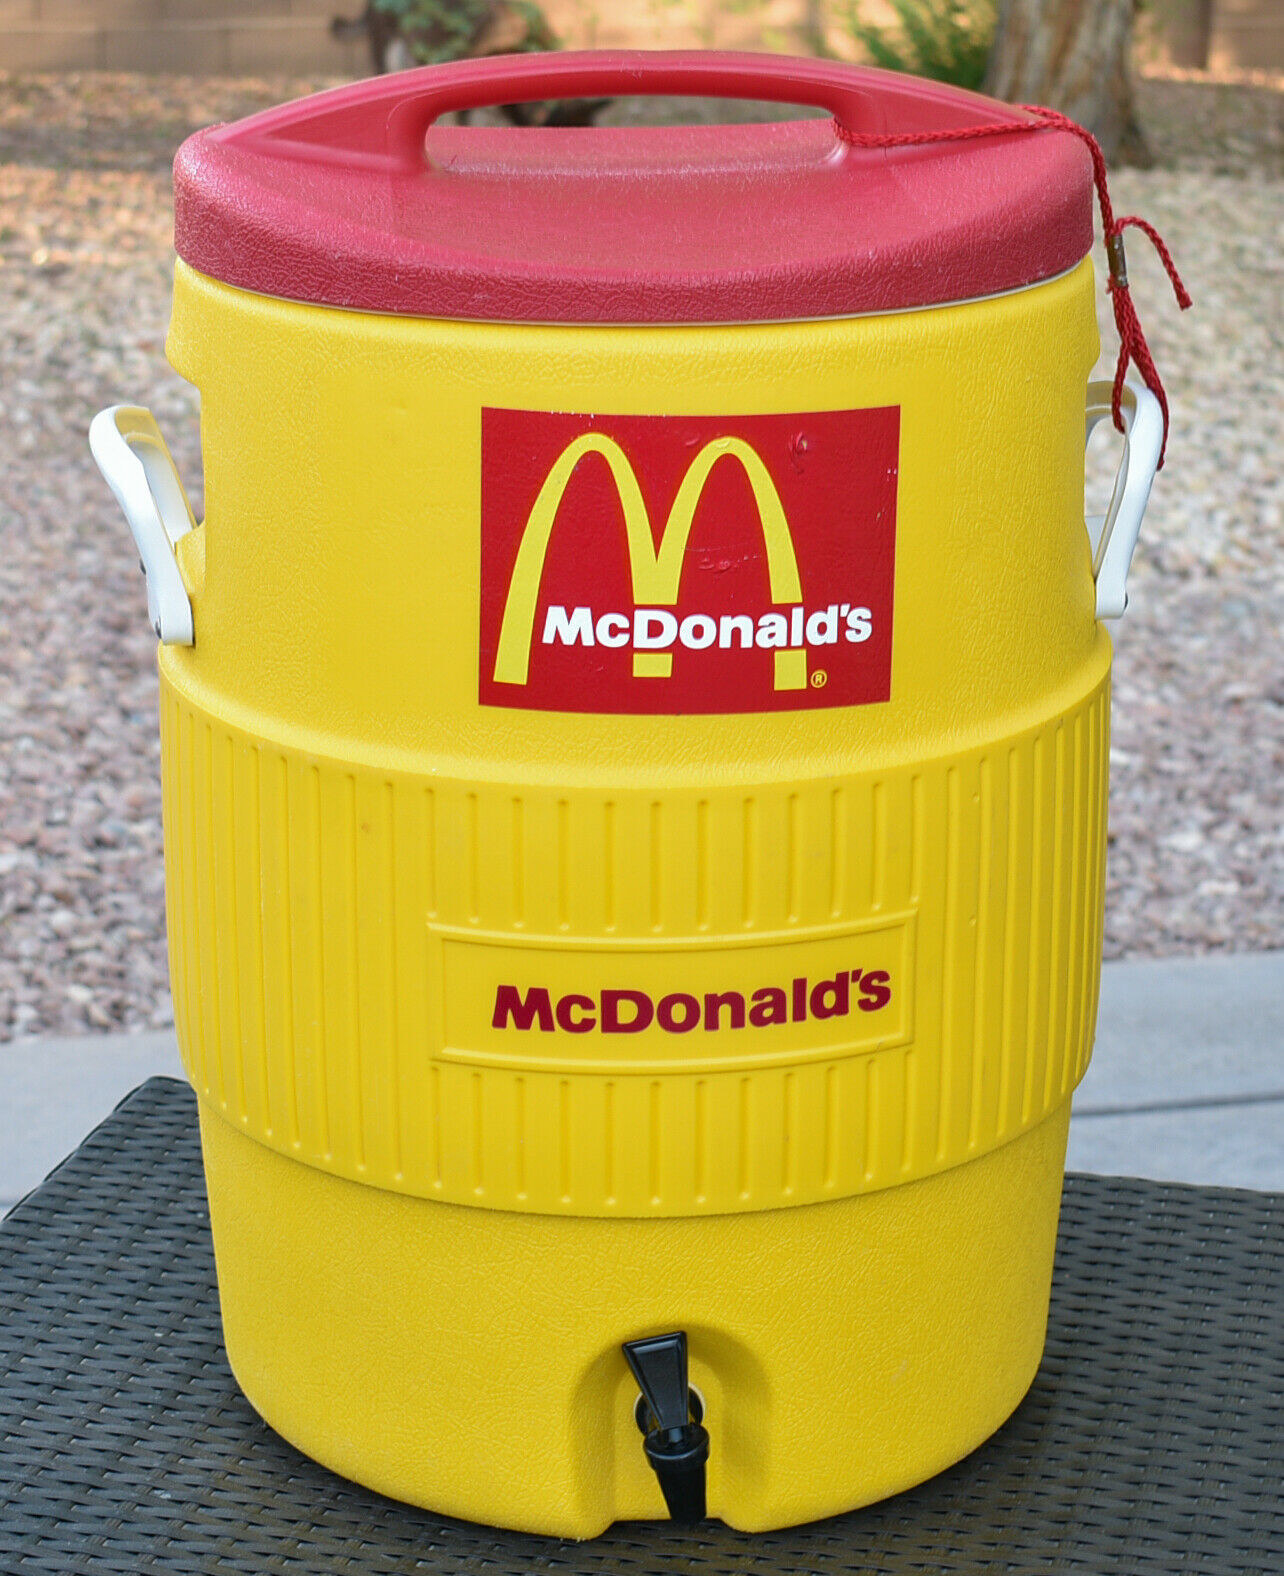 A large yellow color with the McDonald's logo on it